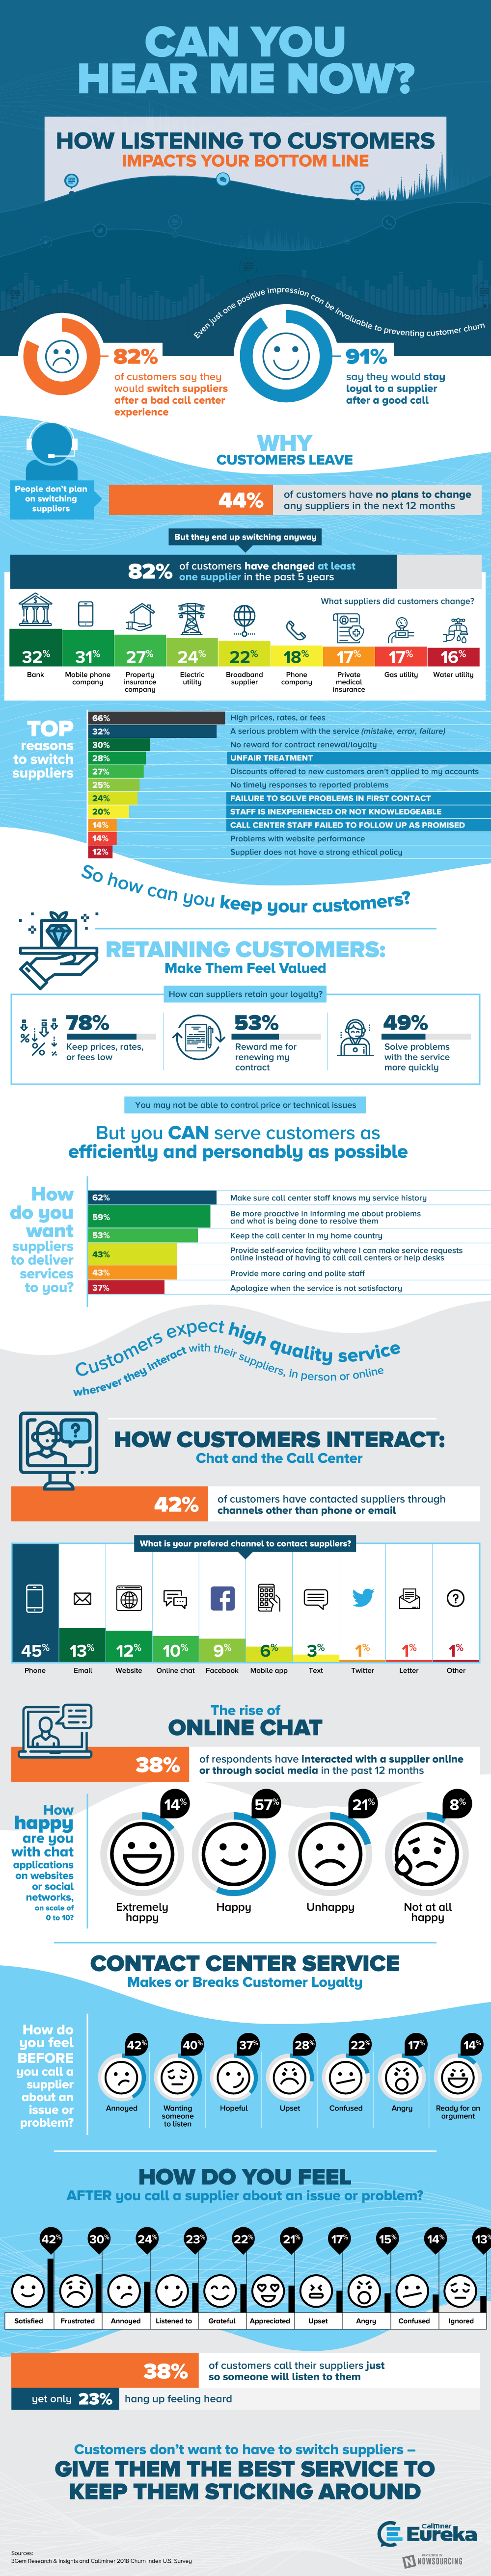 Every business relies on repeat customers, but not listening to customers is the best way to ensure they leave. This infographic outlines common reasons for customer churn and what to do to prevent it.